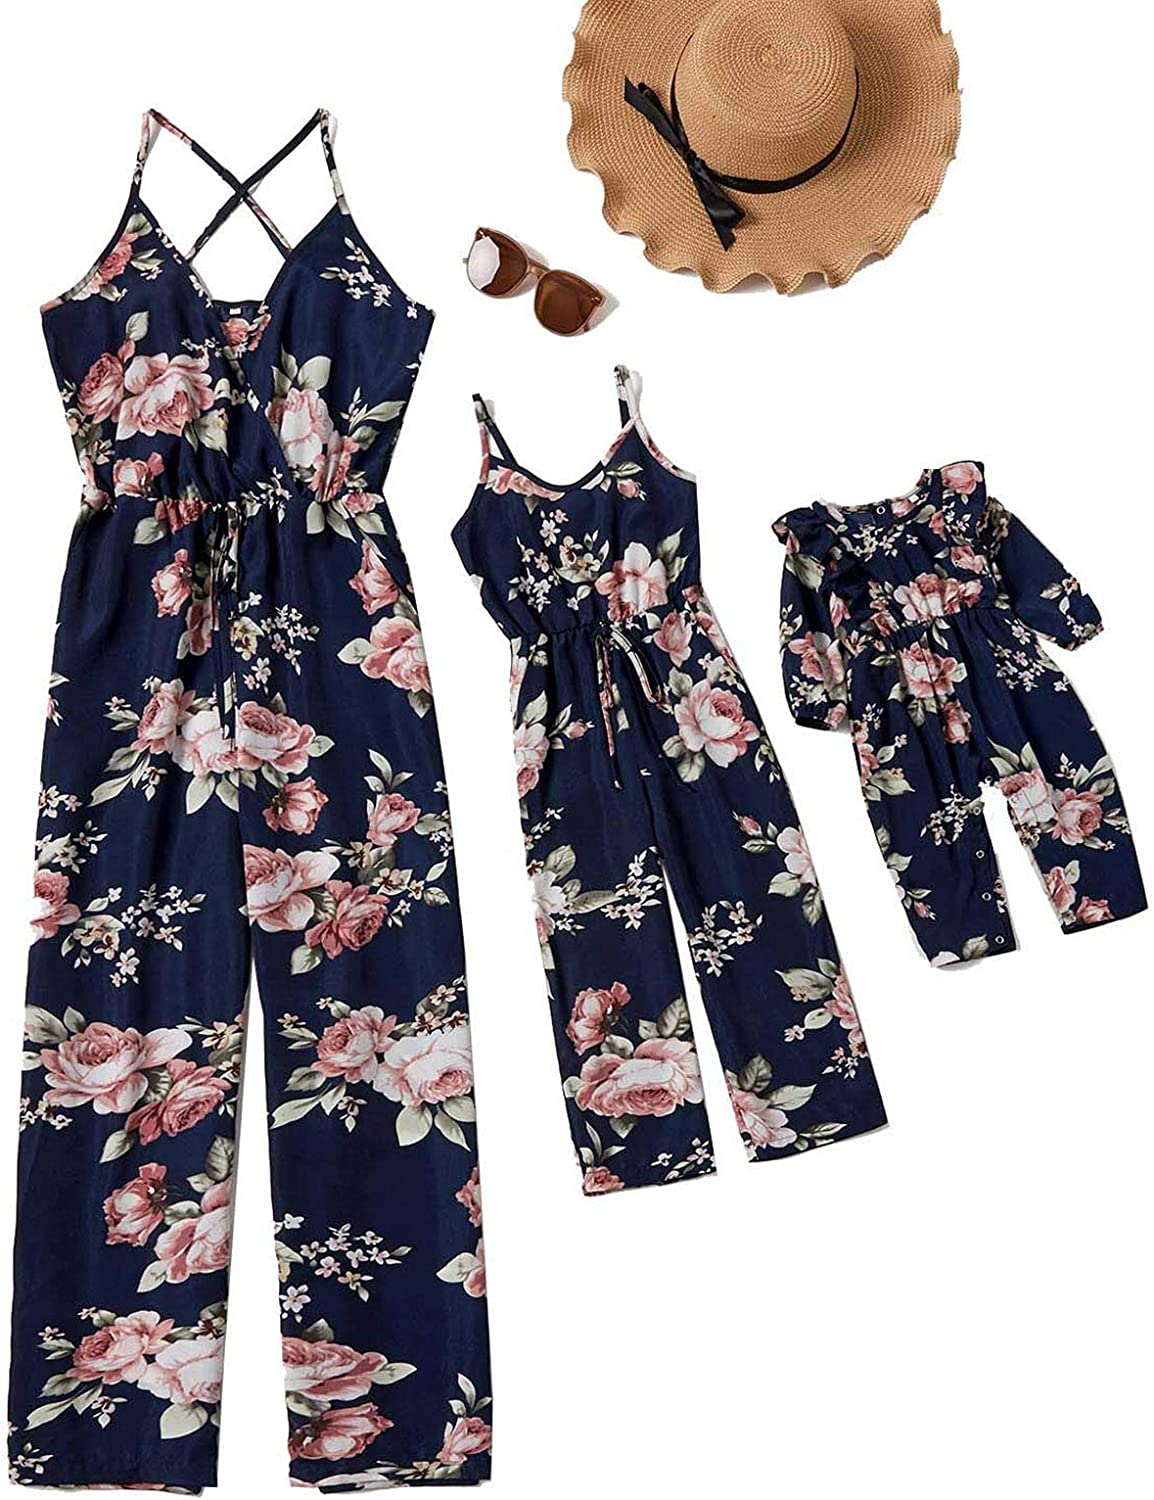 Fankle Mommy and Me Matching F Straps Challenge the Finally popular brand lowest price of Japan ☆ Daughter Jumpsuits Mom